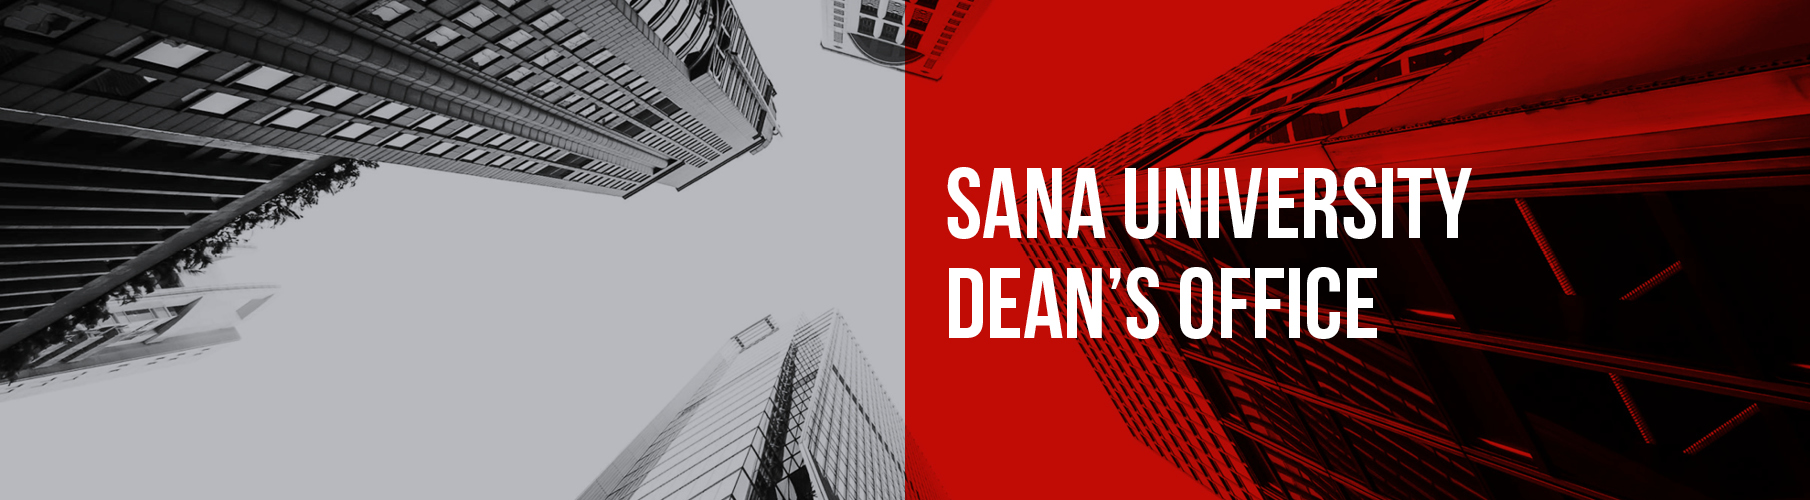 Sana University Deans Office